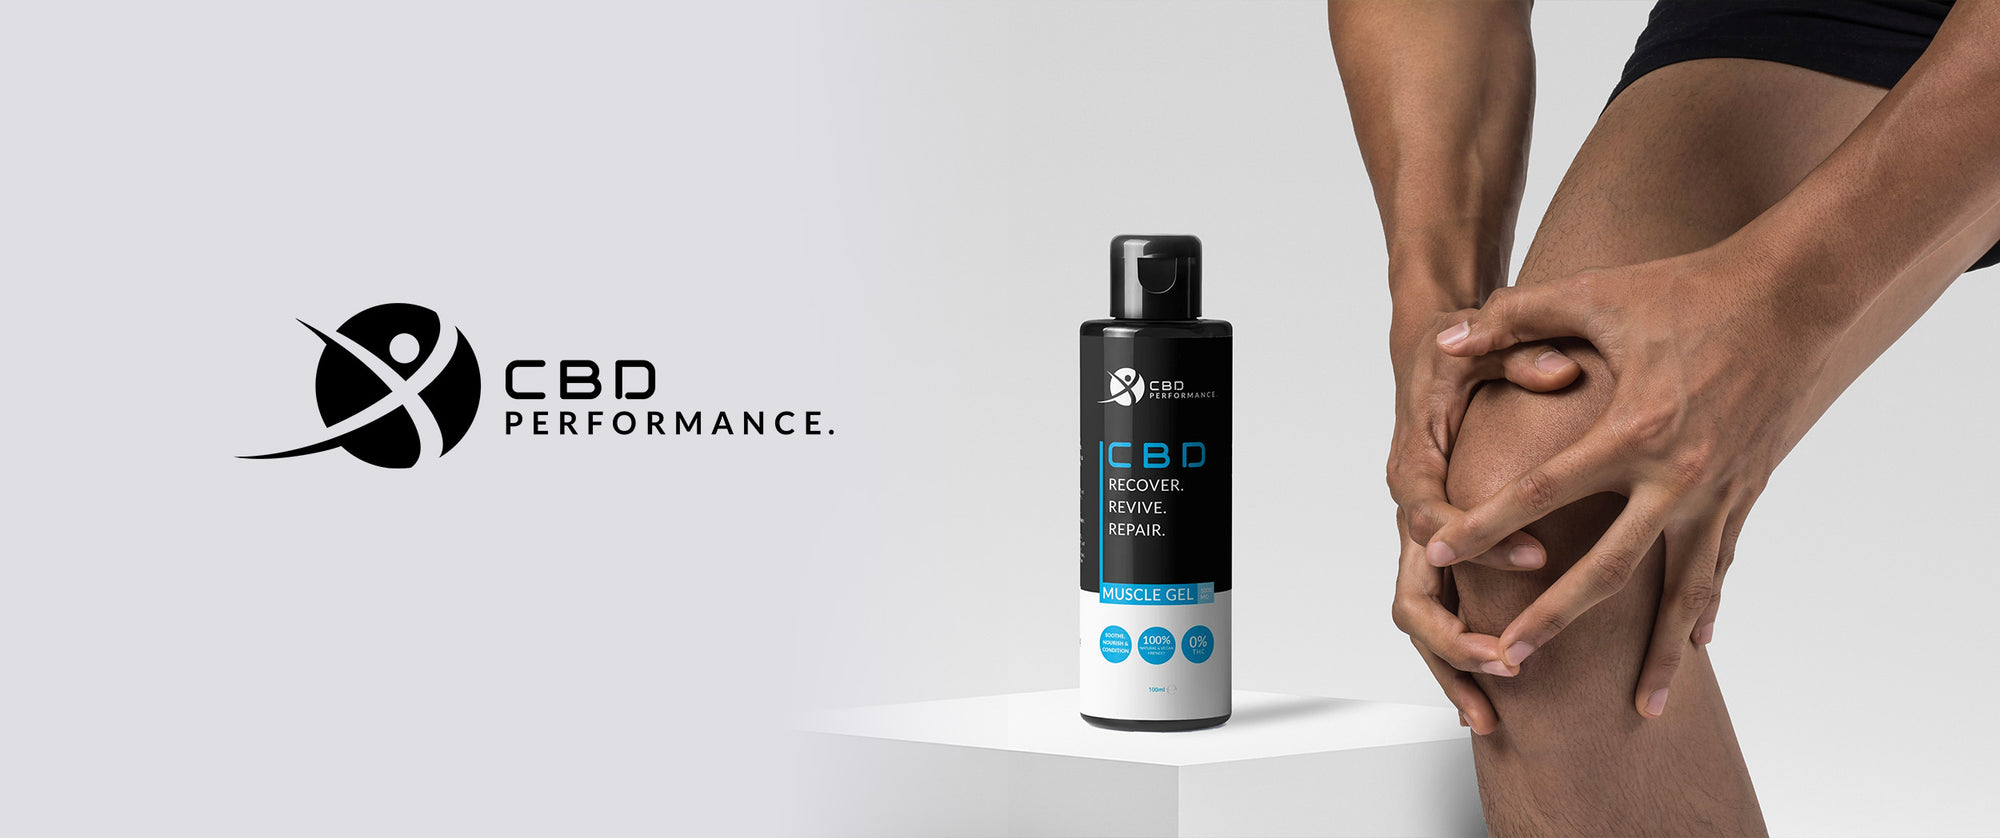 CBD muscle gel for pain and recovery